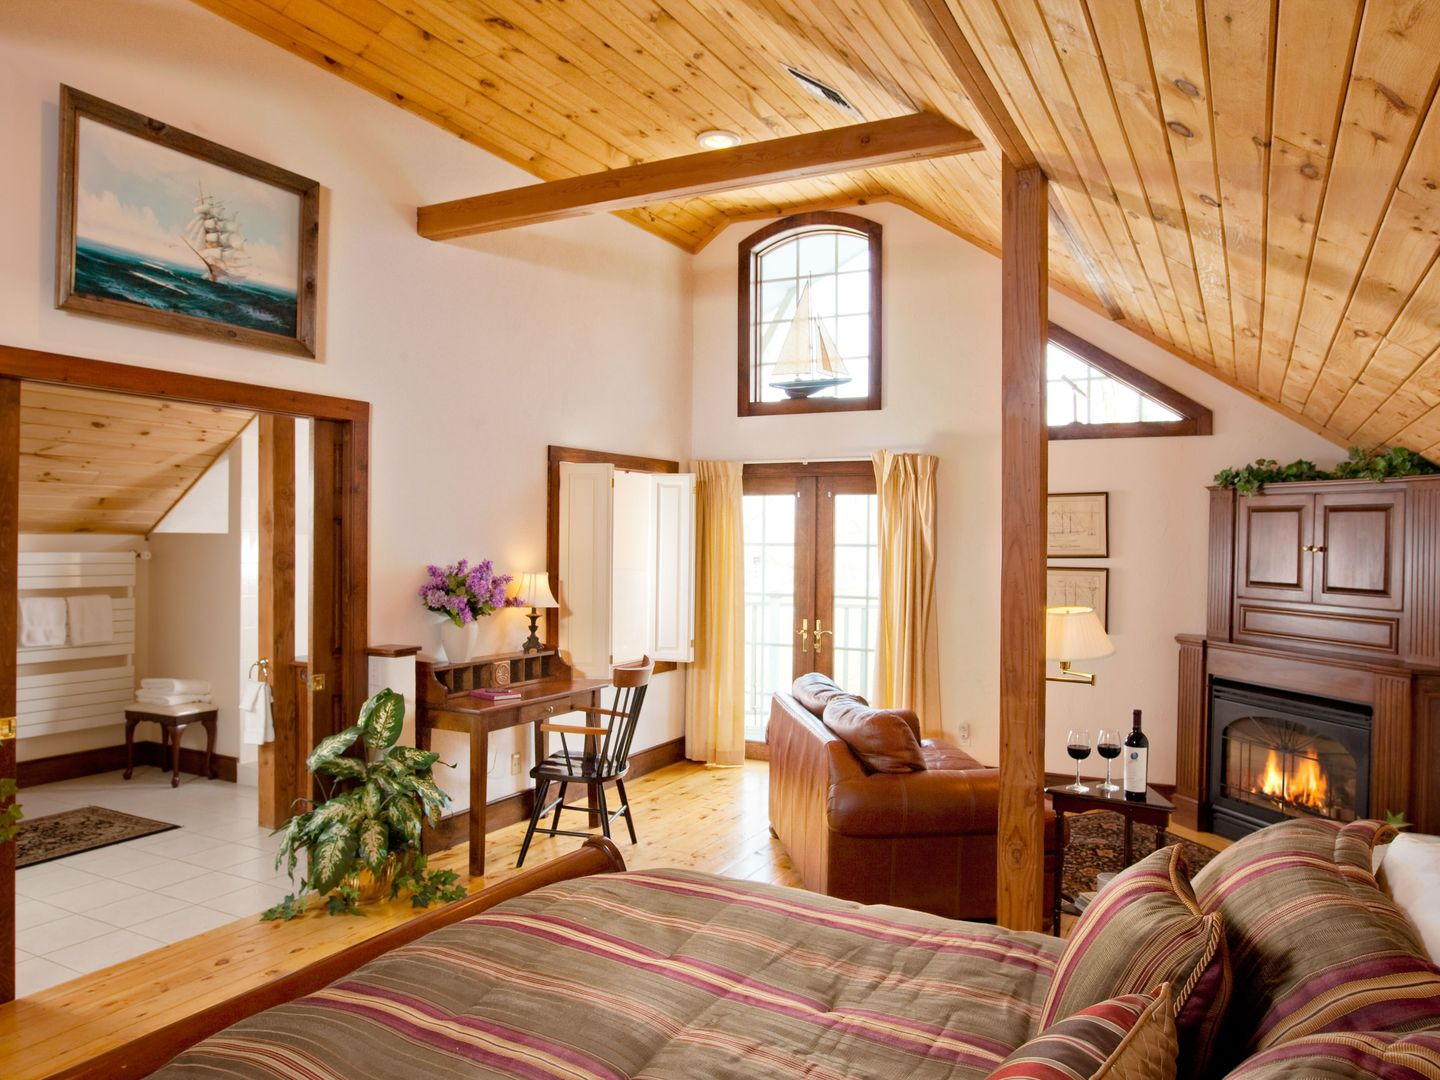 Ledyard Bed and Breakfast